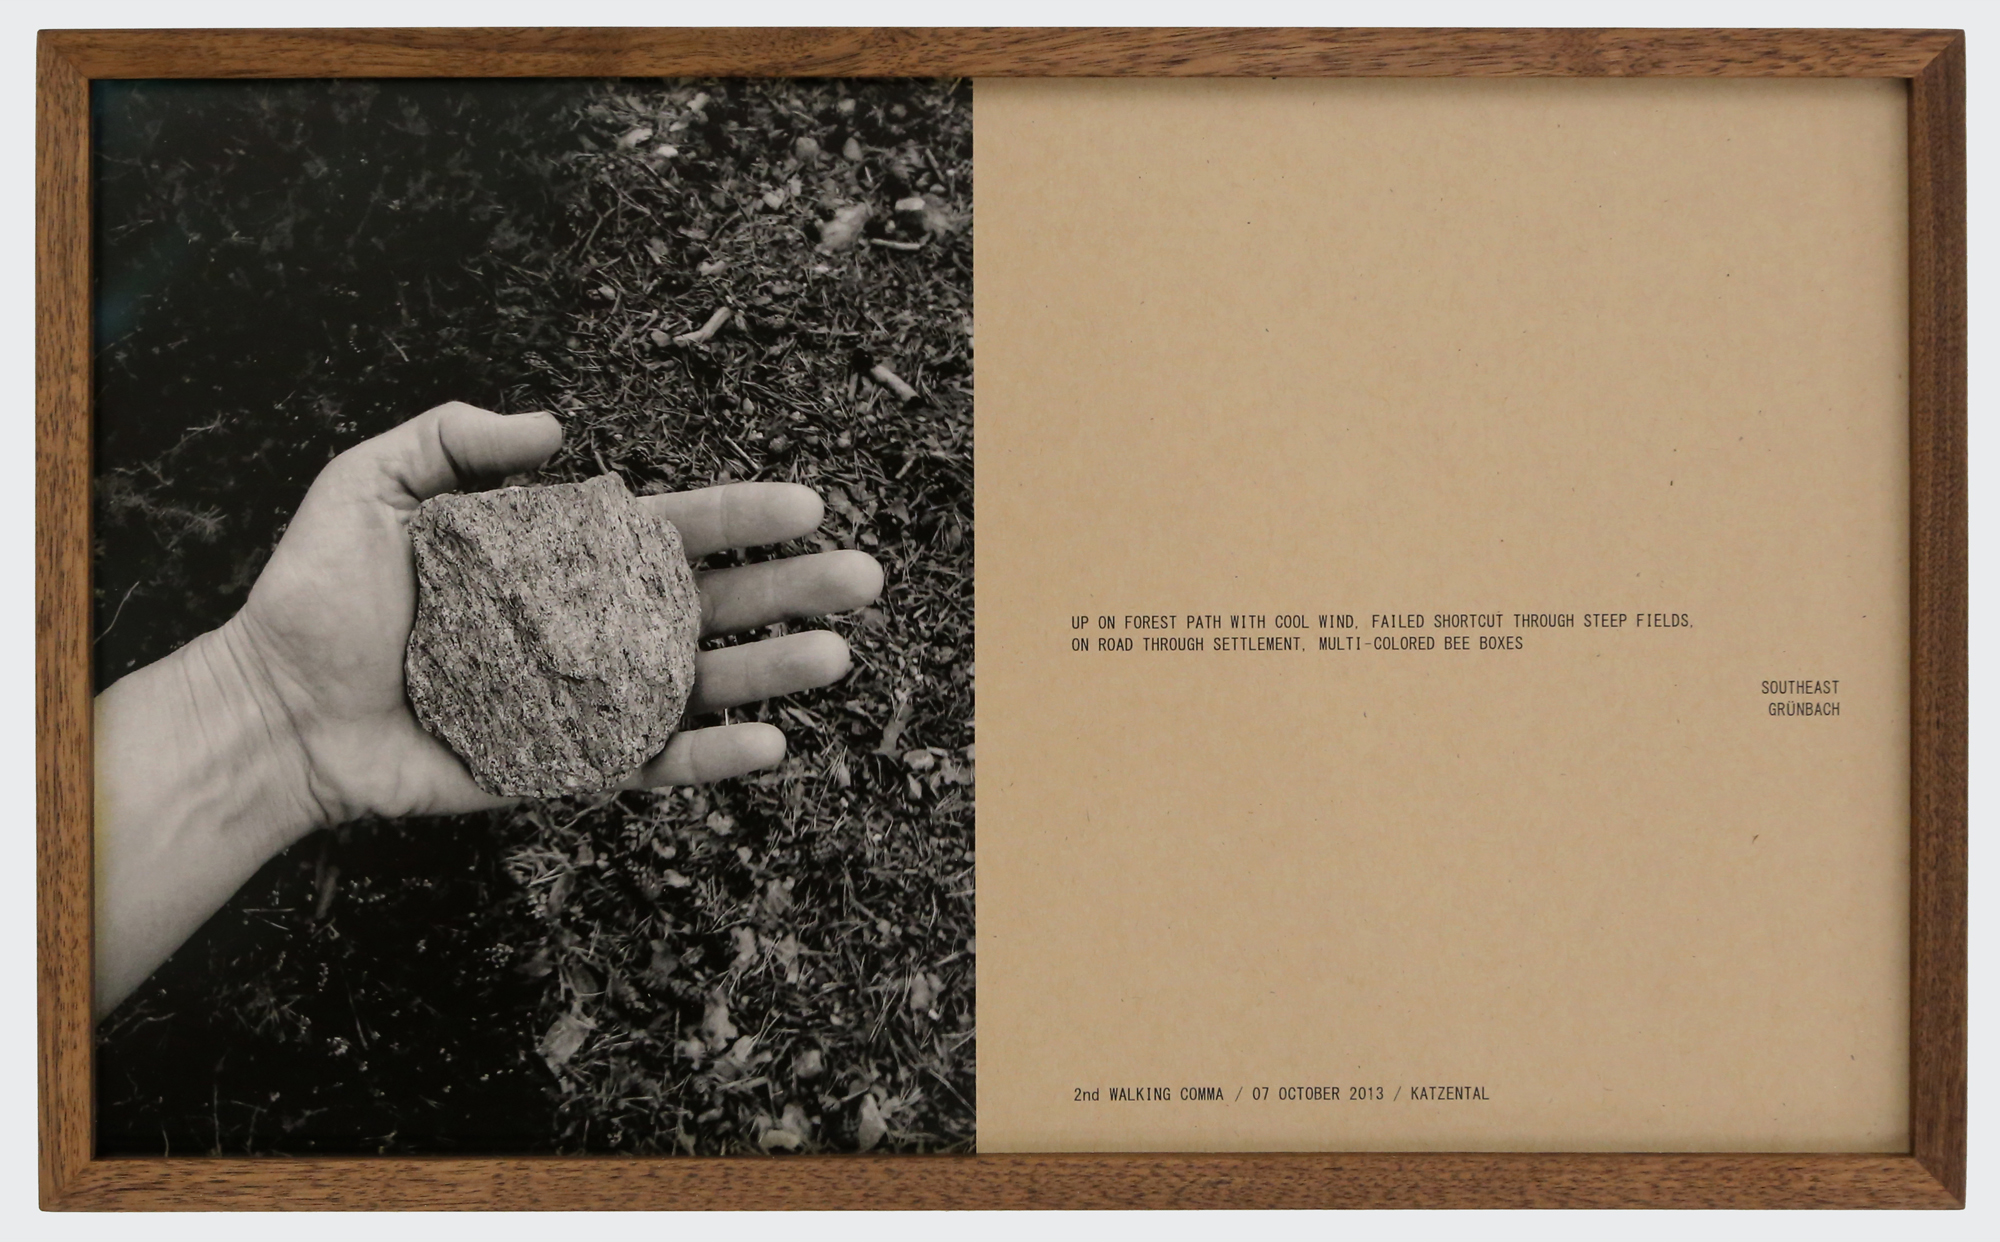 Helen Mirra, 2nd walking comma, 7 October, Katzental, 2013, black and white photograph and text, 25 1/2 x 42 cm